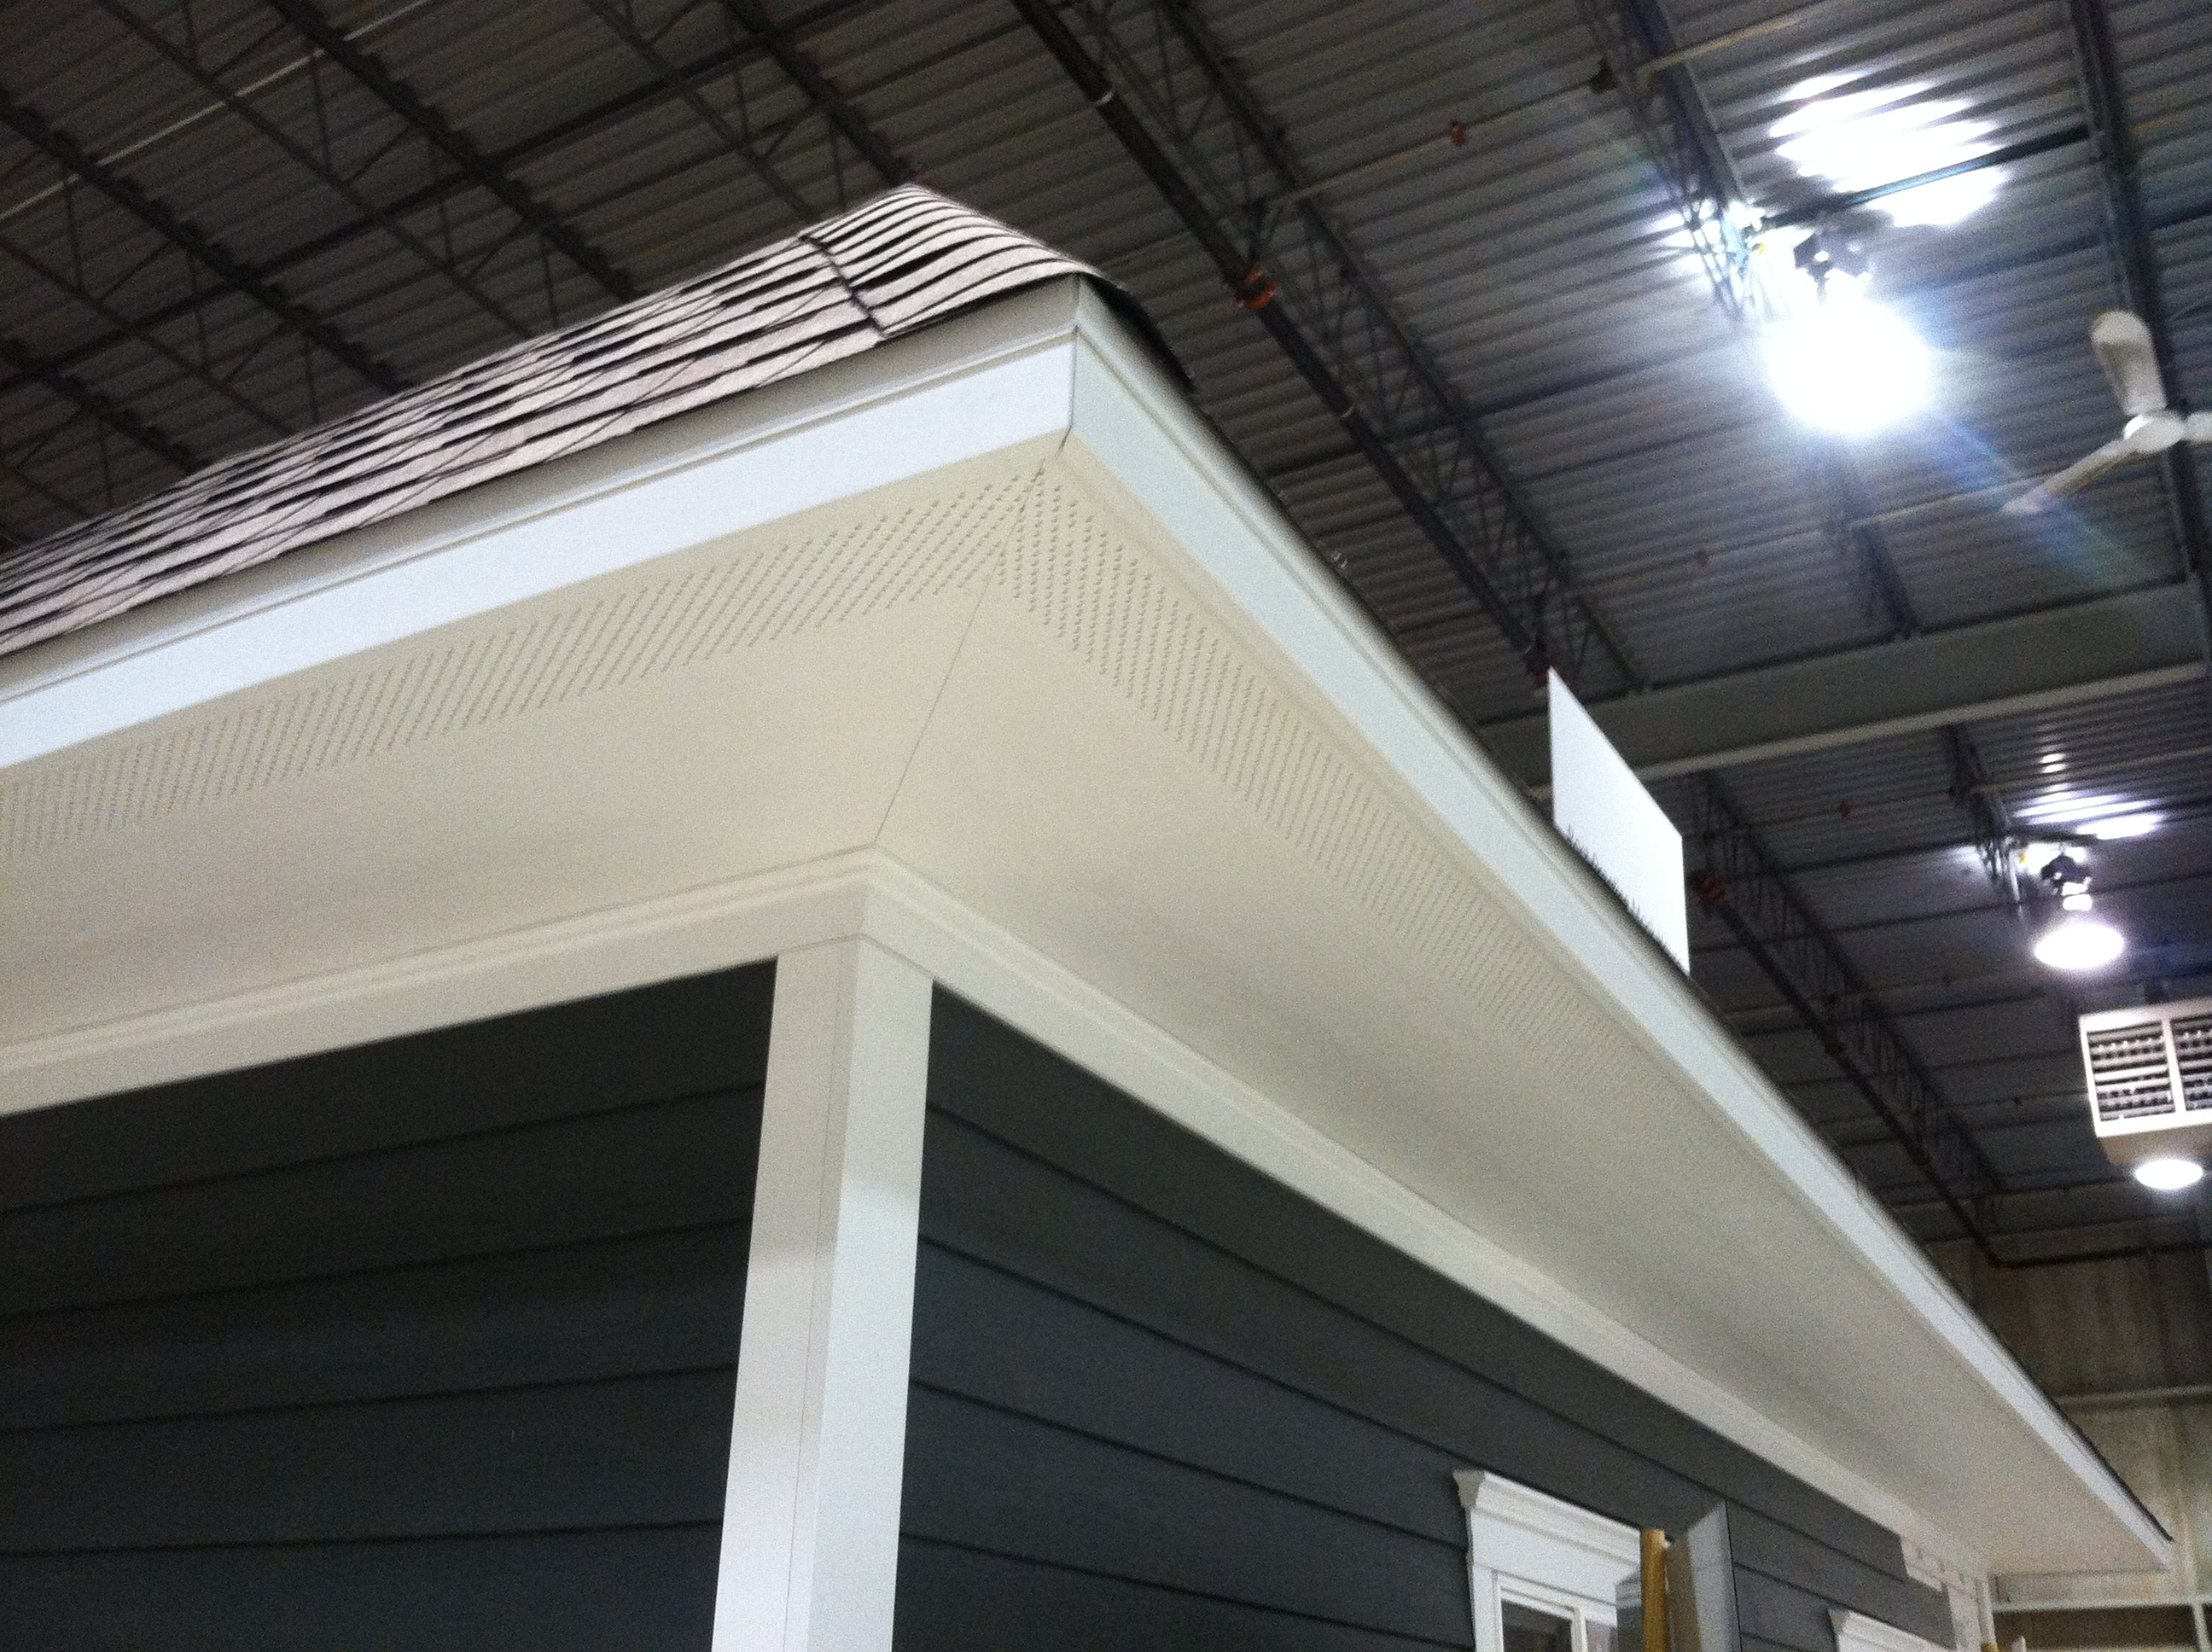 Proper air flow on the soffits